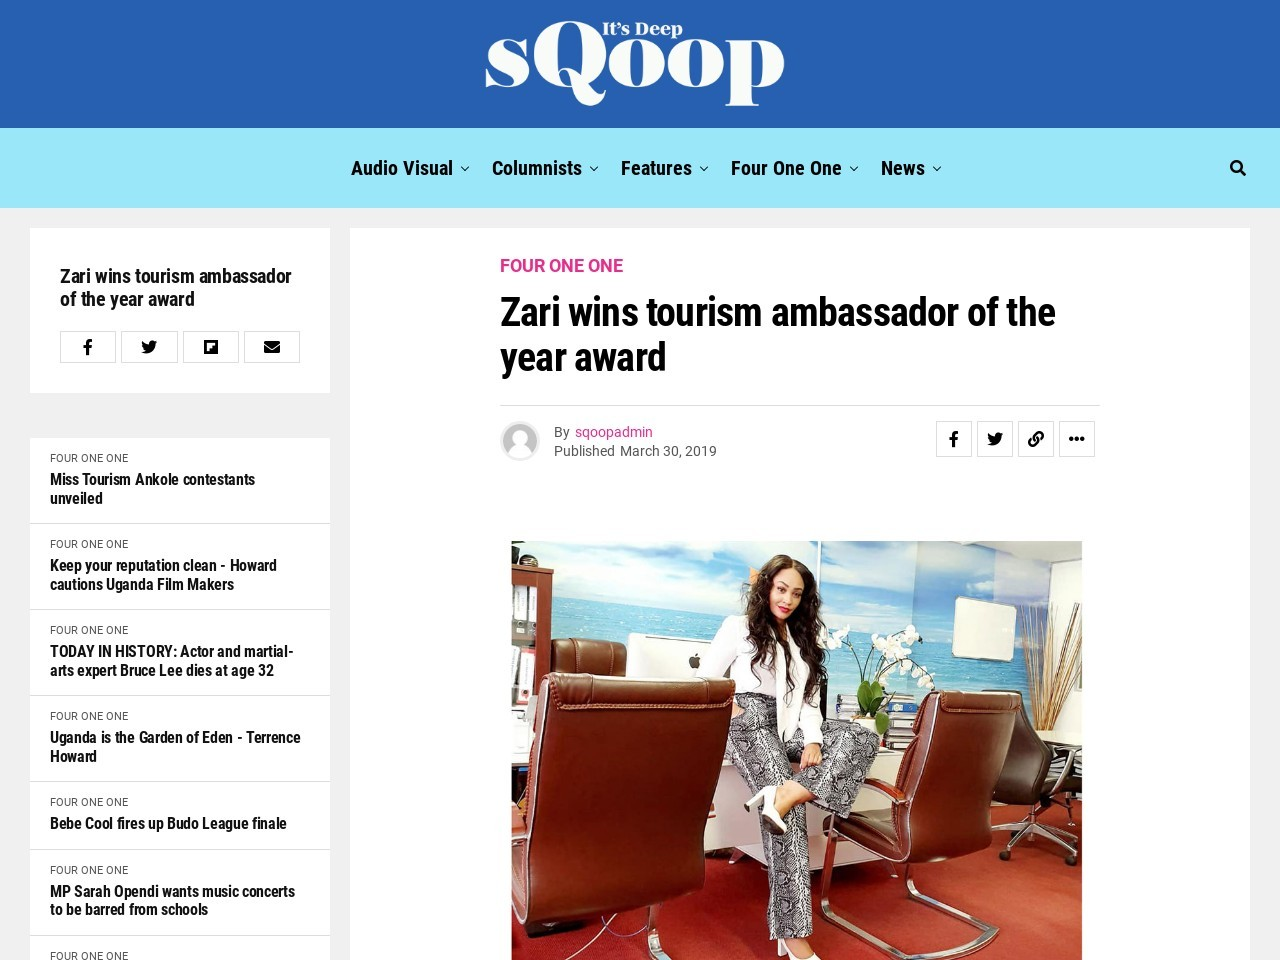 Zari wins tourism ambassador of the year award